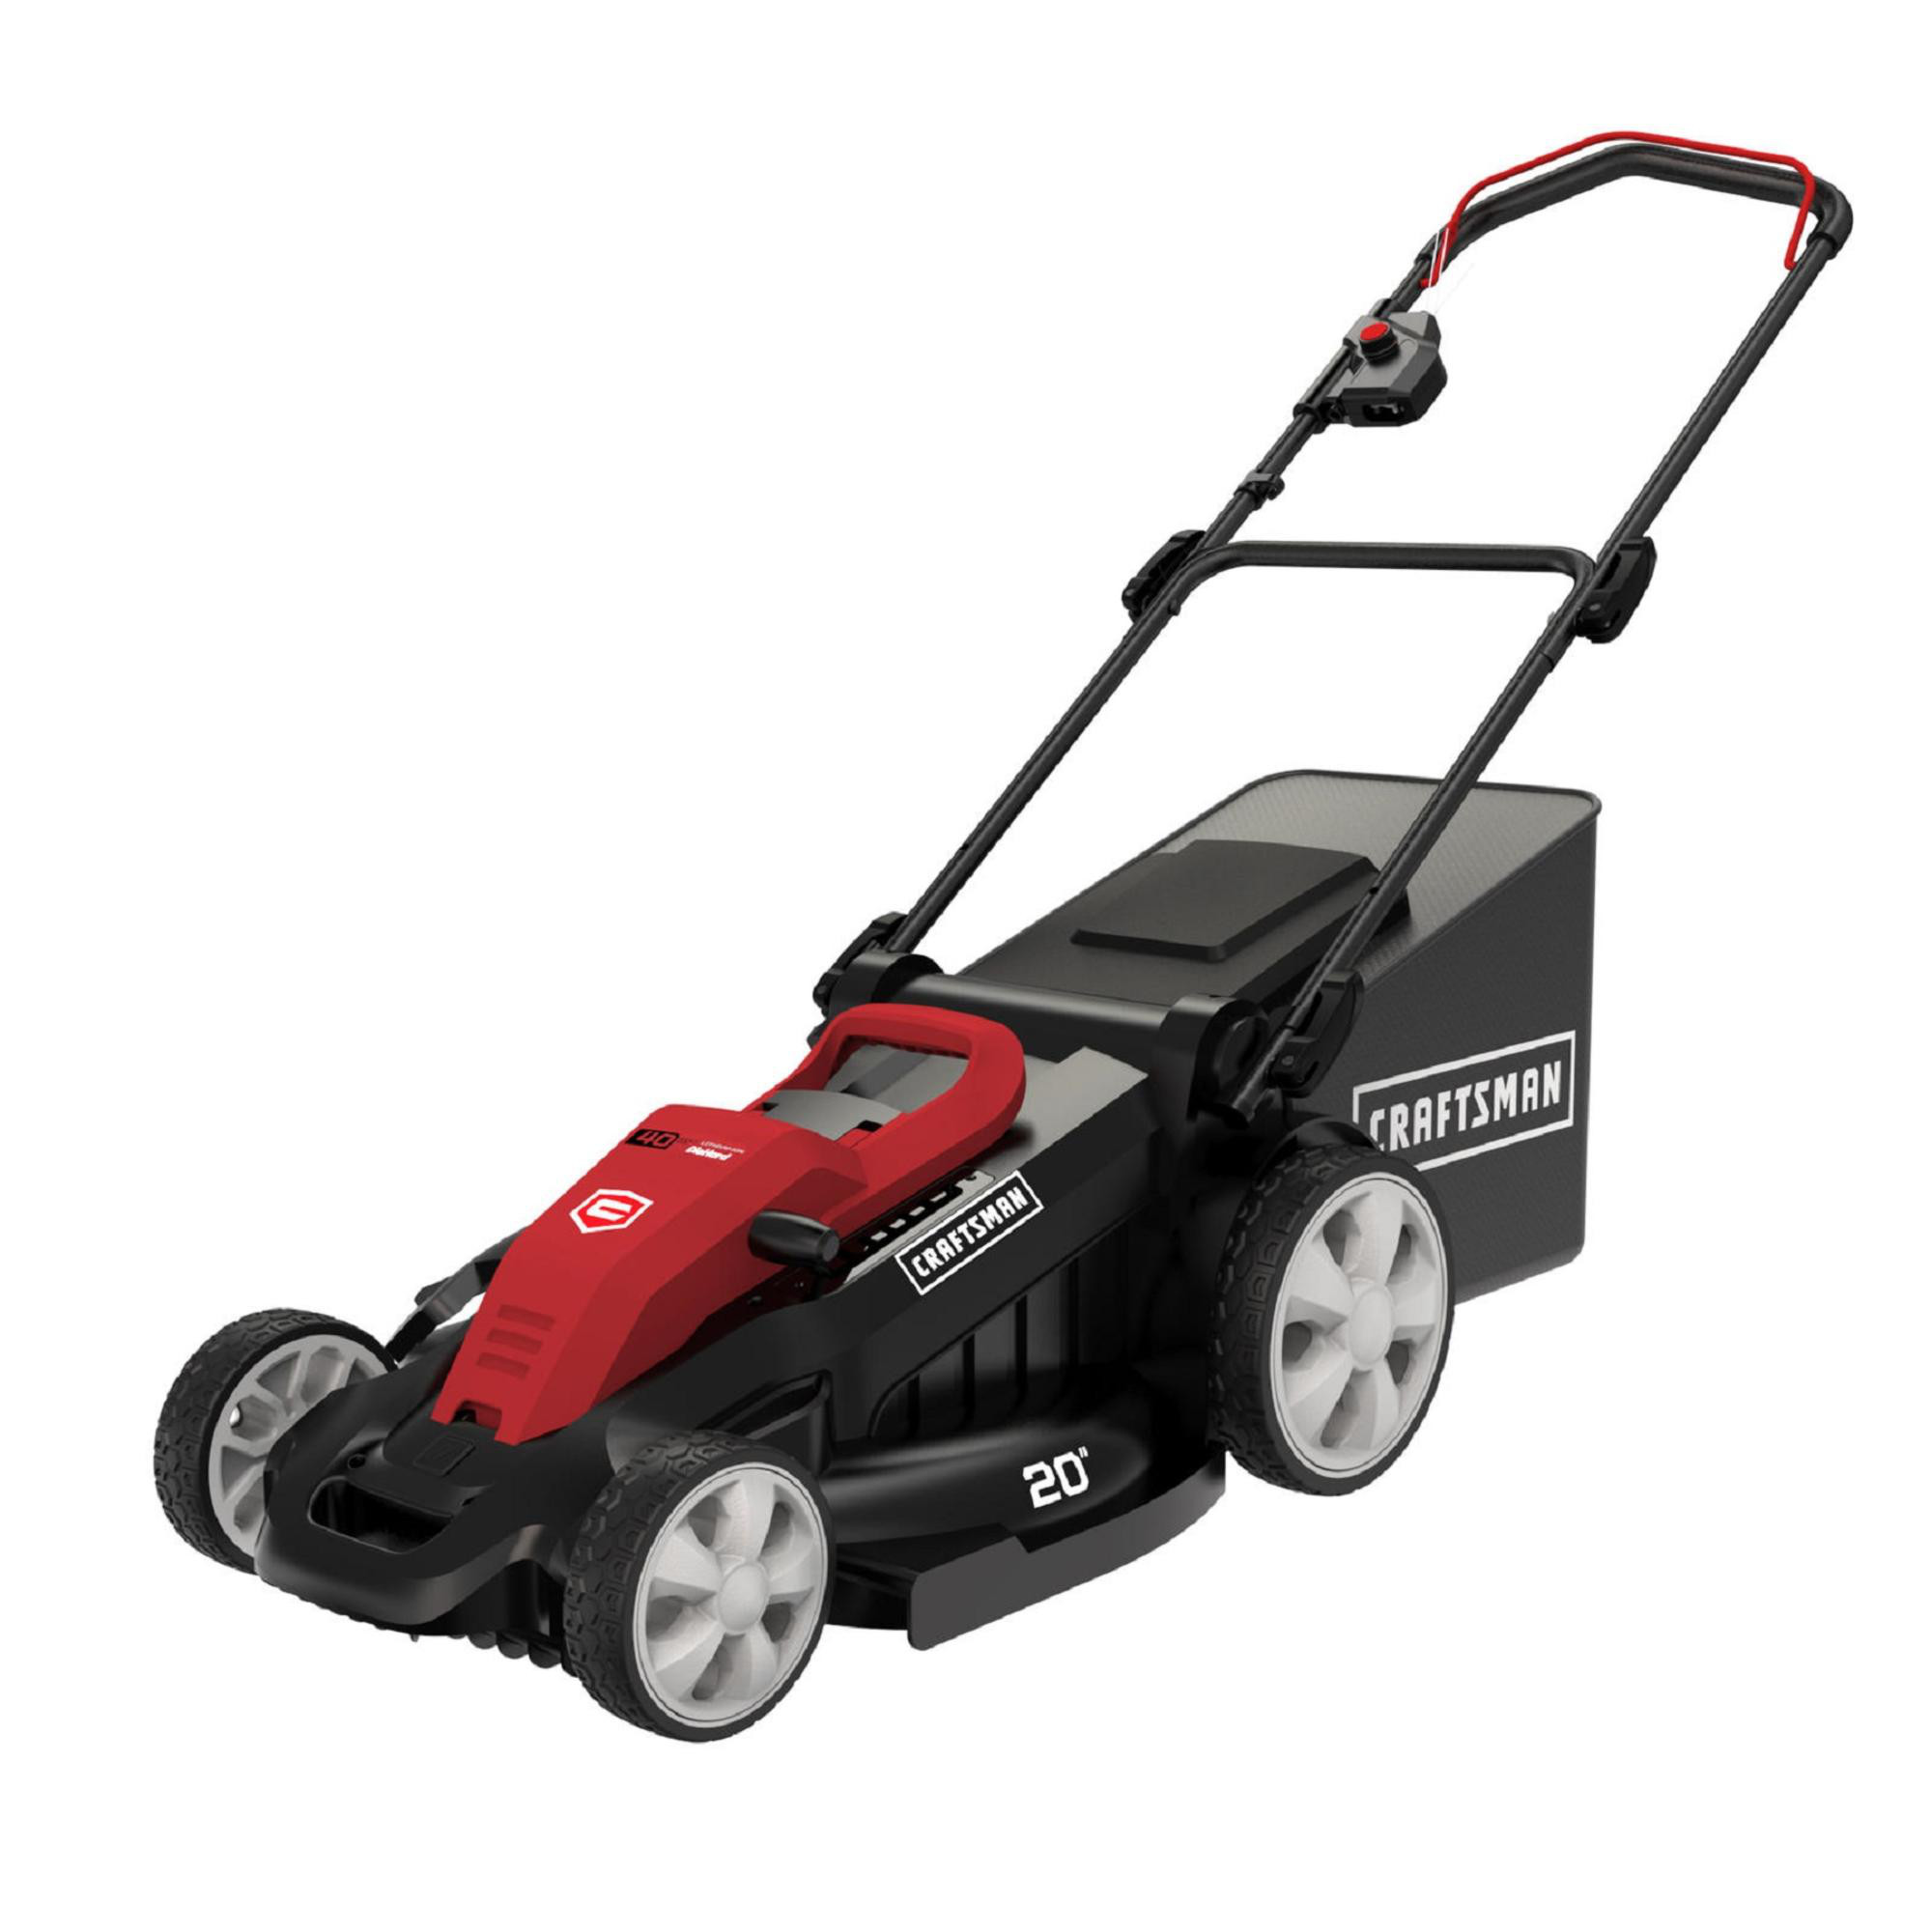 Lawn Mower Craftsman 40v Electric Mower Lawn And Garden Lawn Mowers